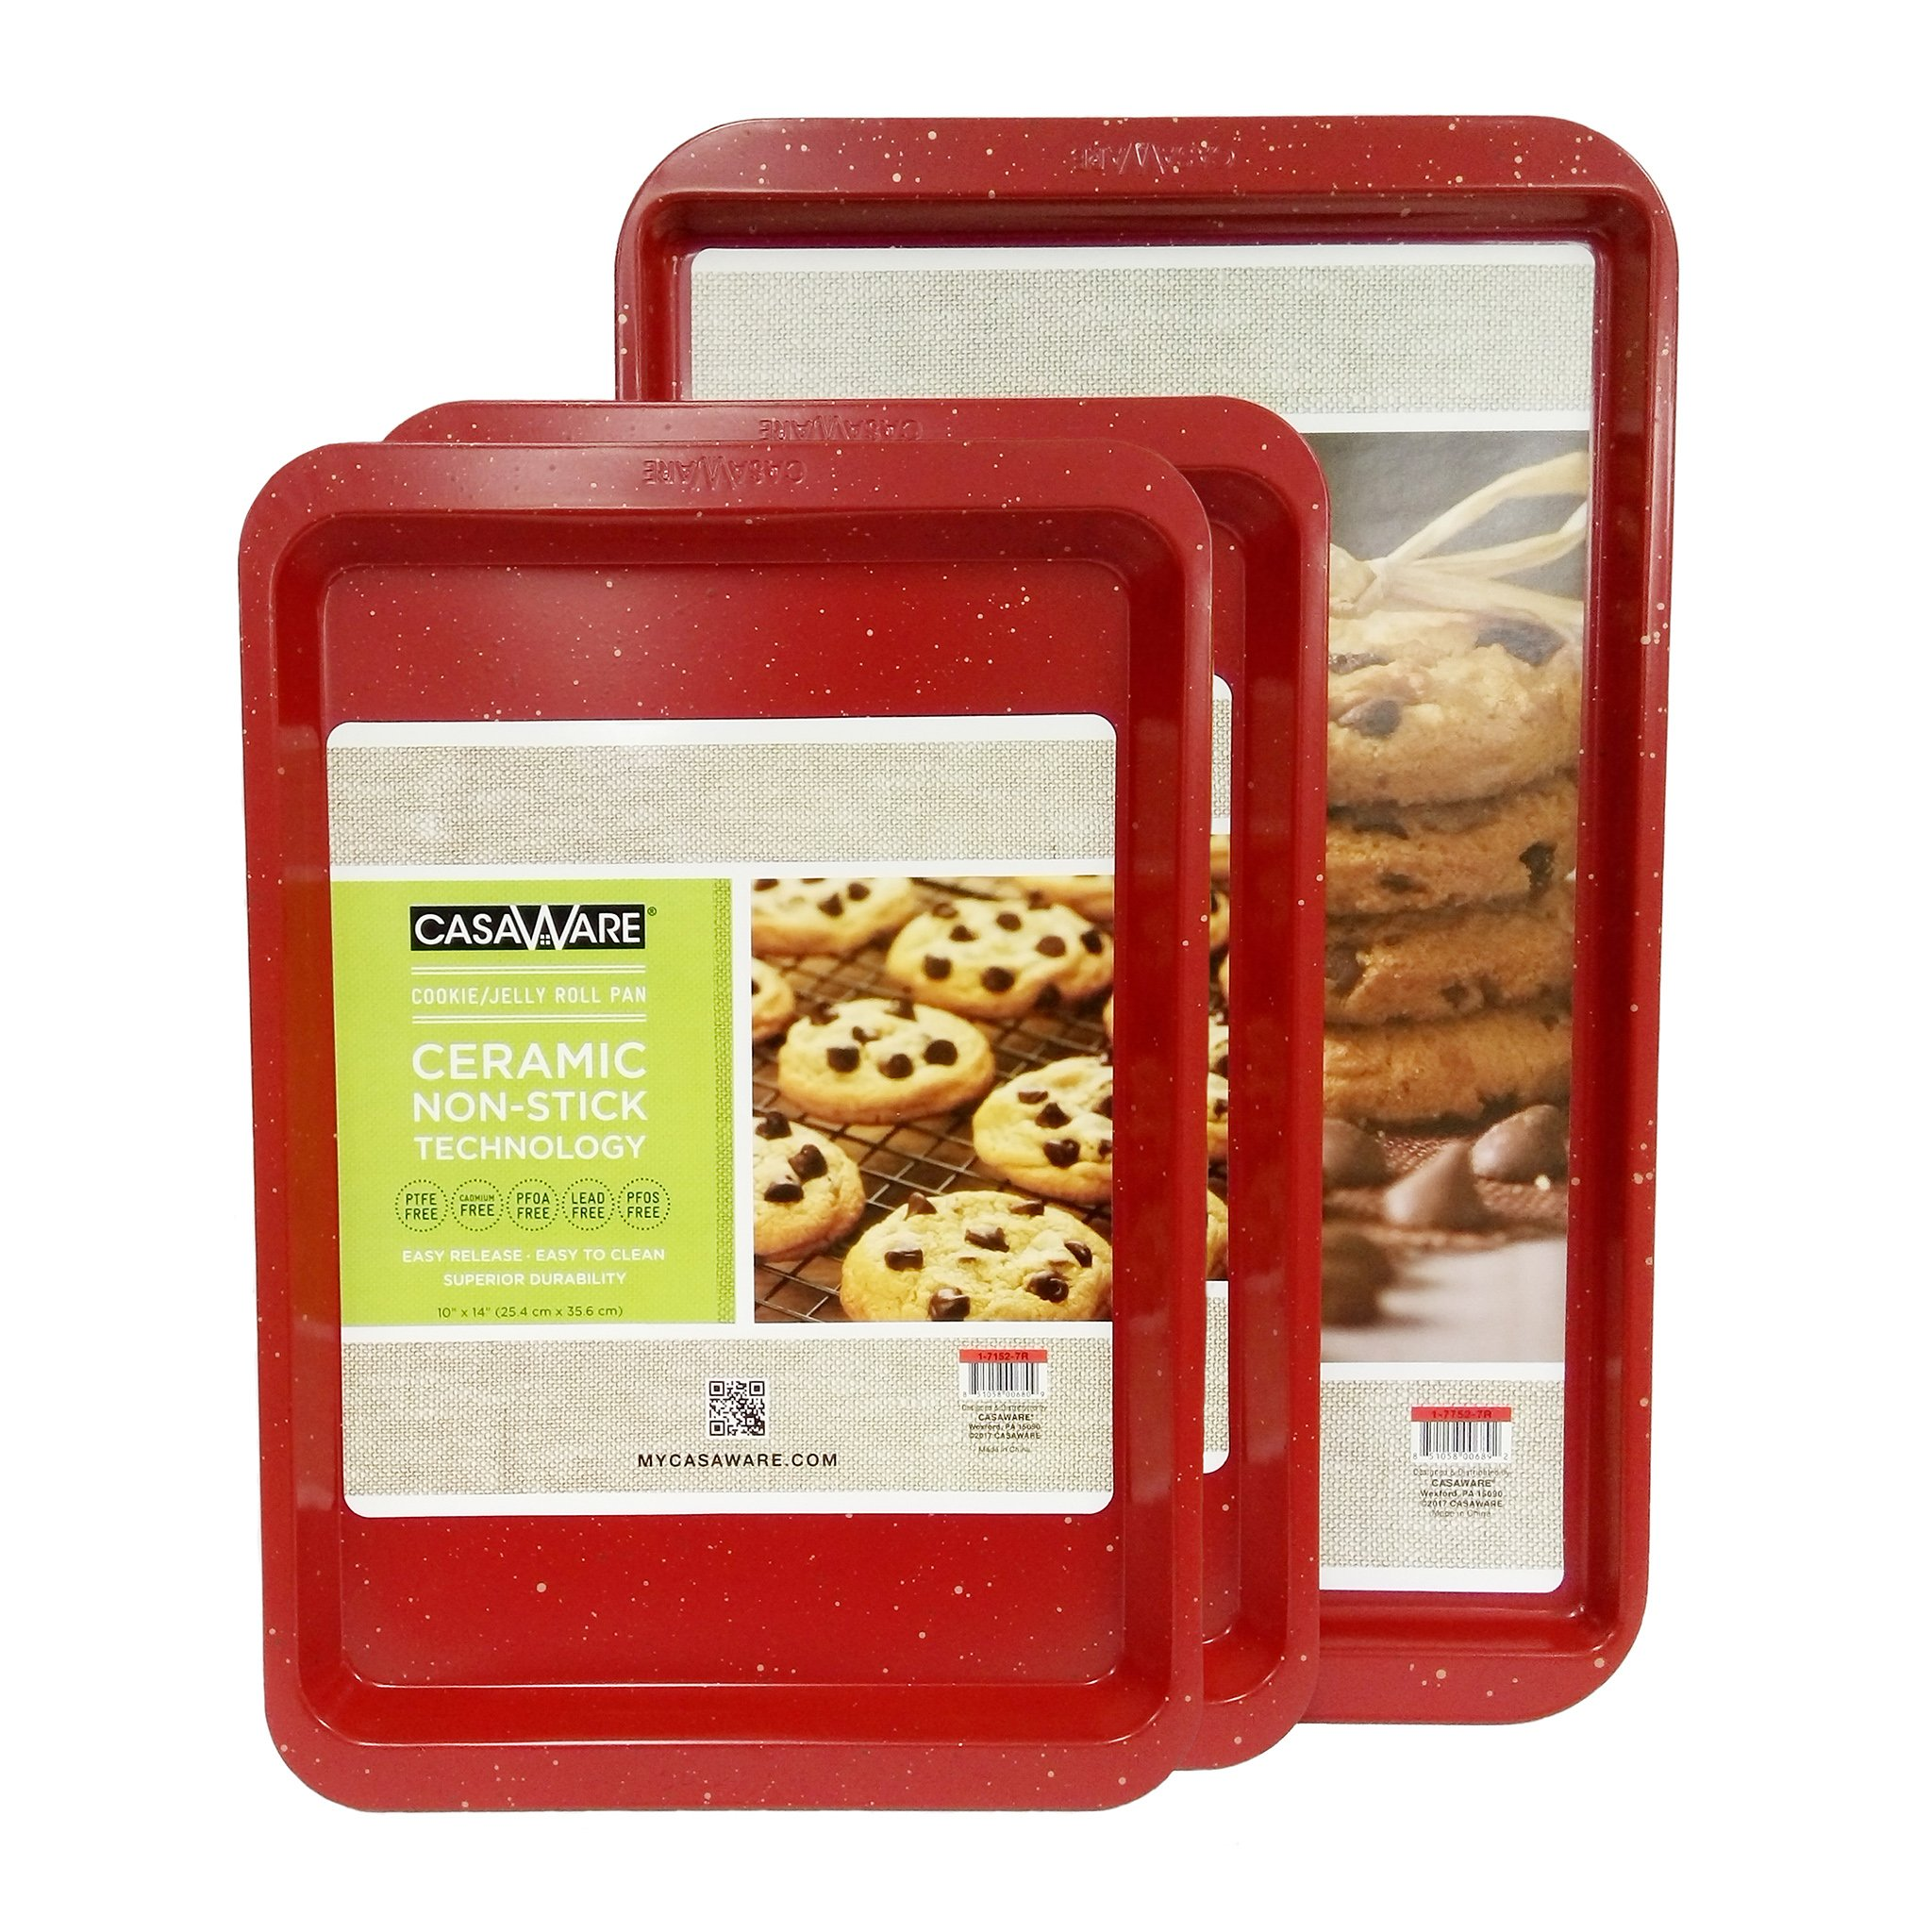 casaWare 3pc Multi-Size Cookie Sheet/Jelly Roll Pan Set (Red Granite)